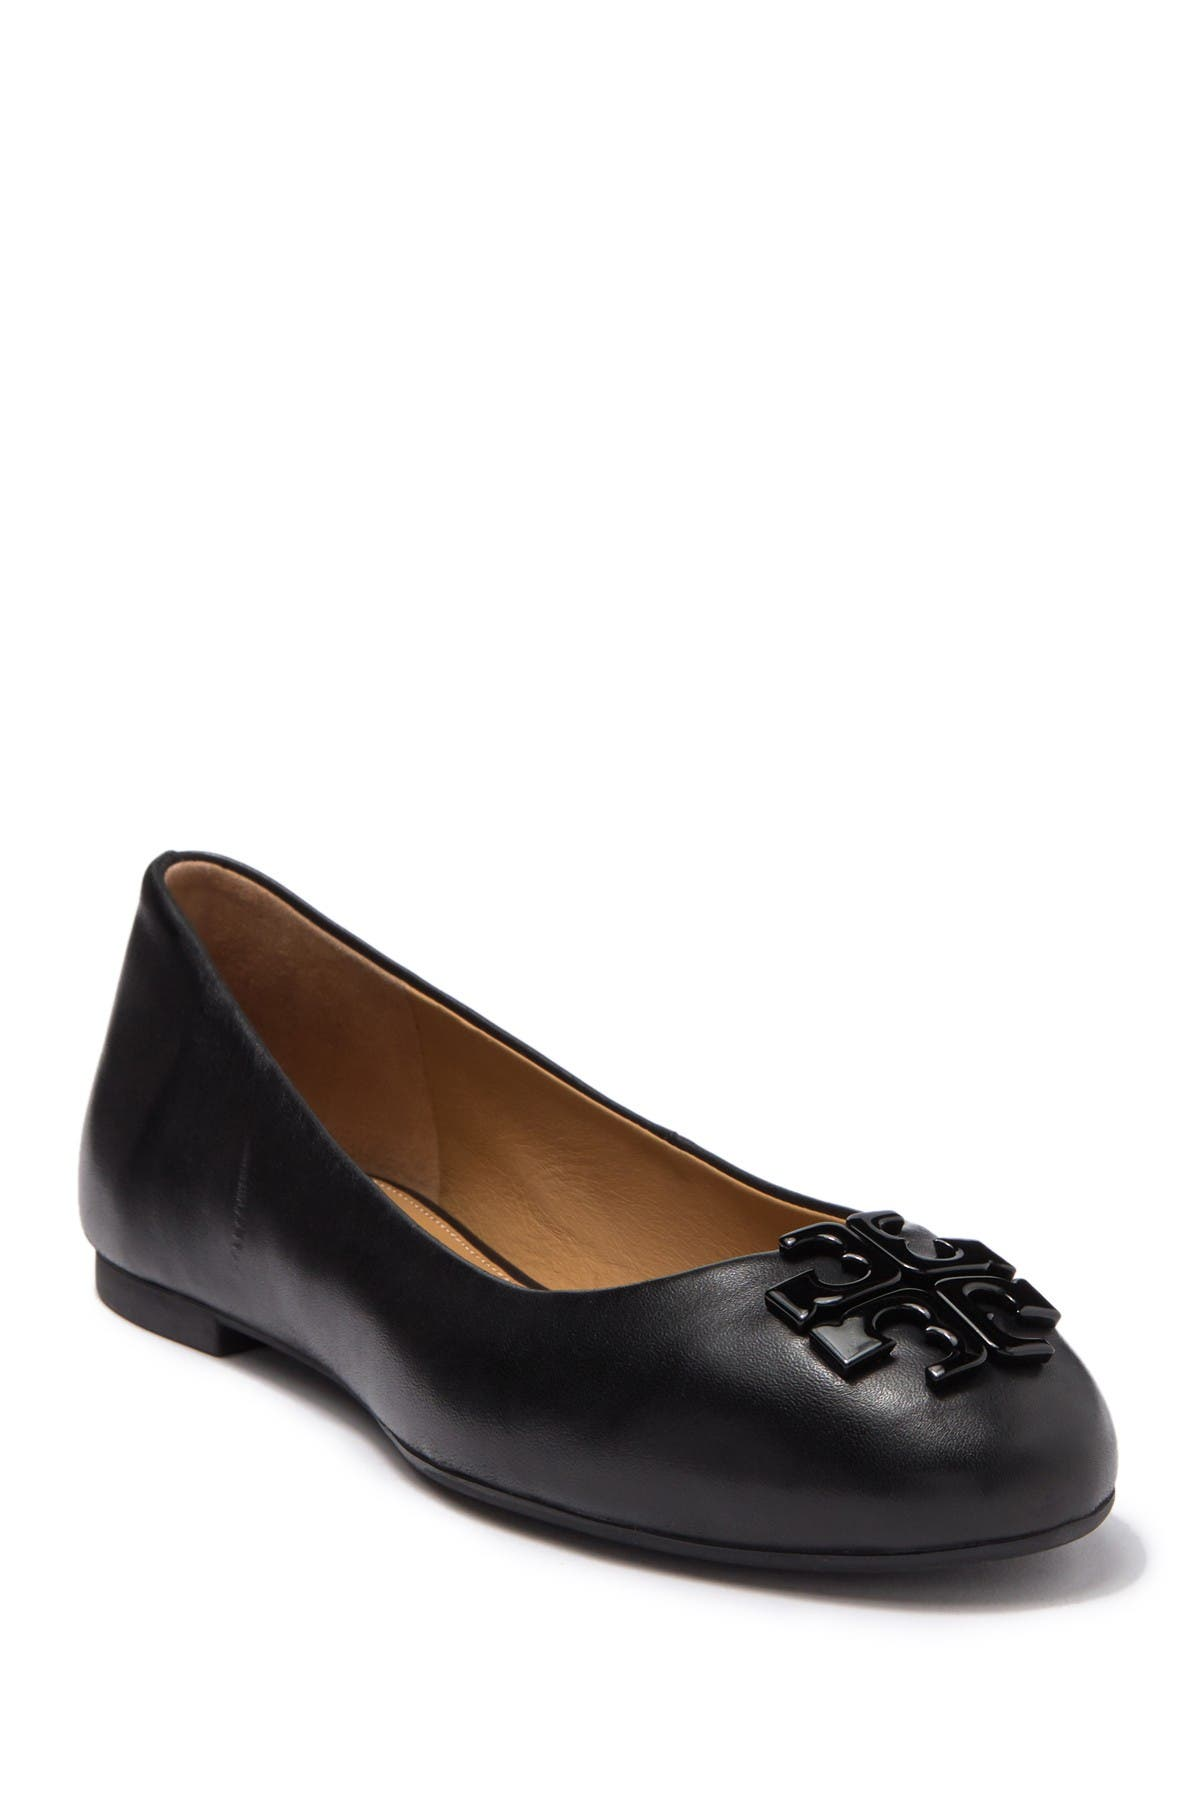 Image of Tory Burch Lowell Leather Ballet Flat